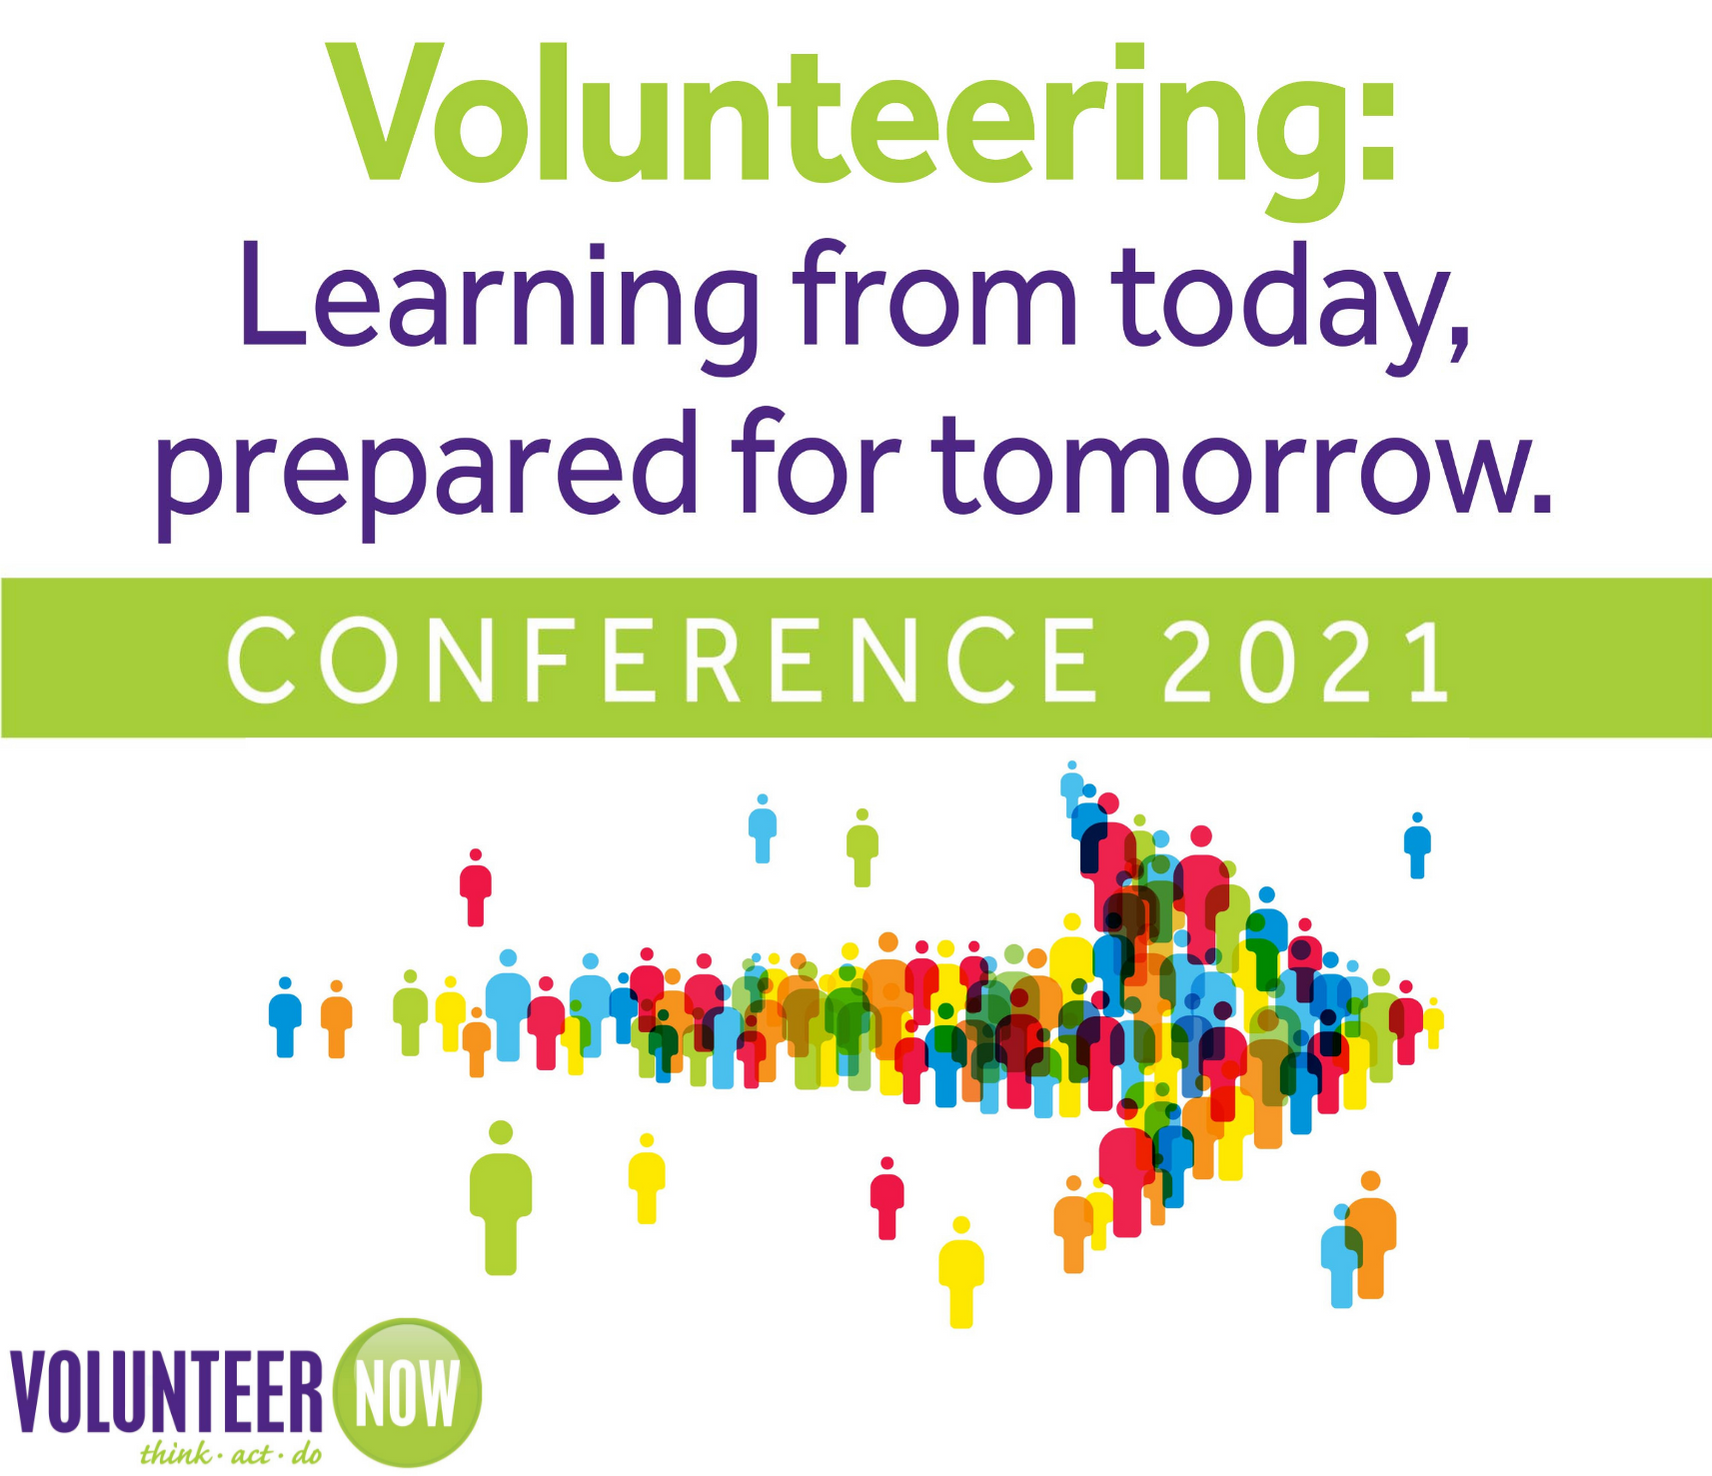 Volunteering: Learning from today, prepared for tomorrow